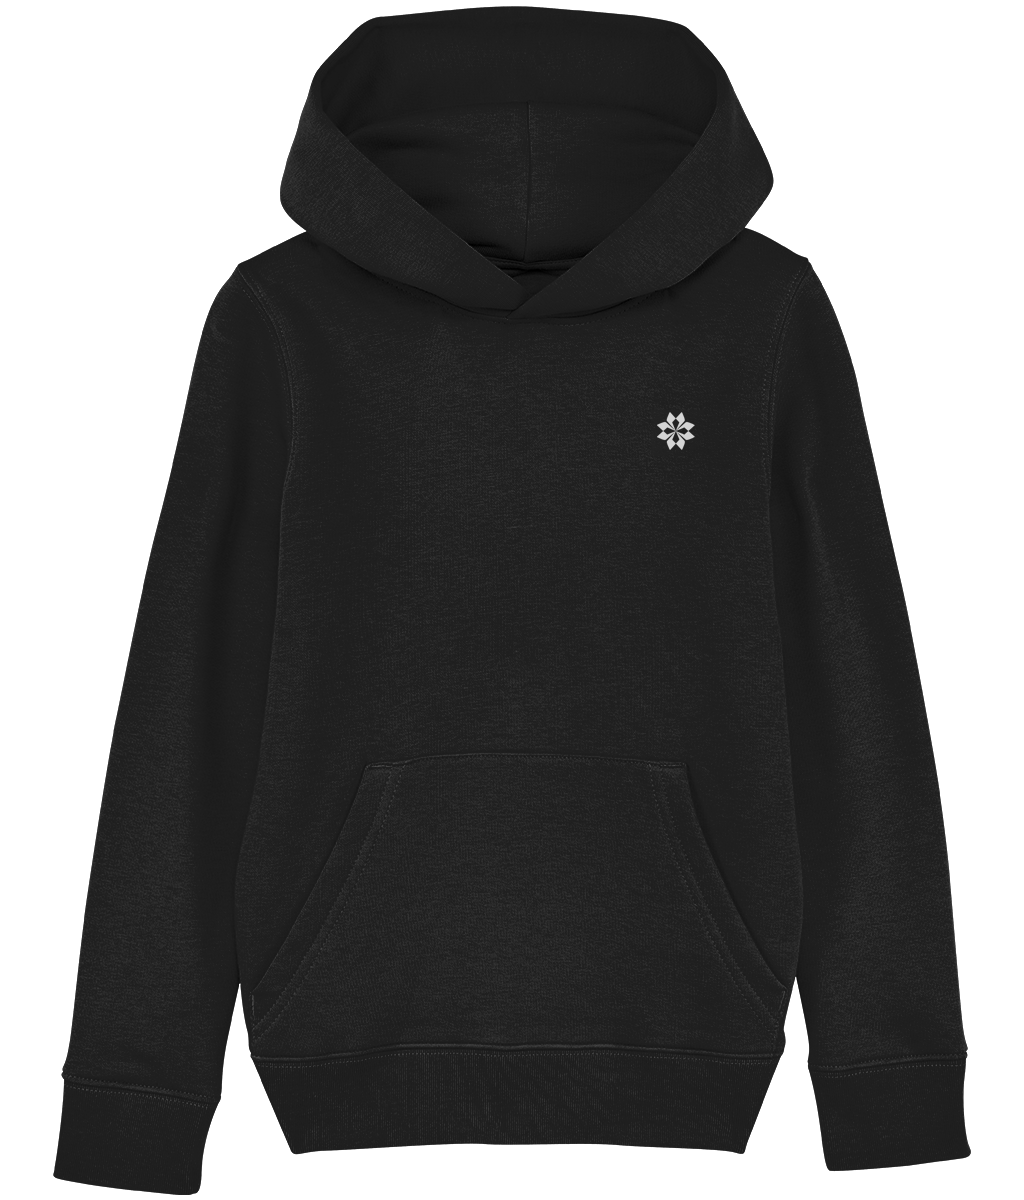 Kids Black hoodie with Grey embroidered logo